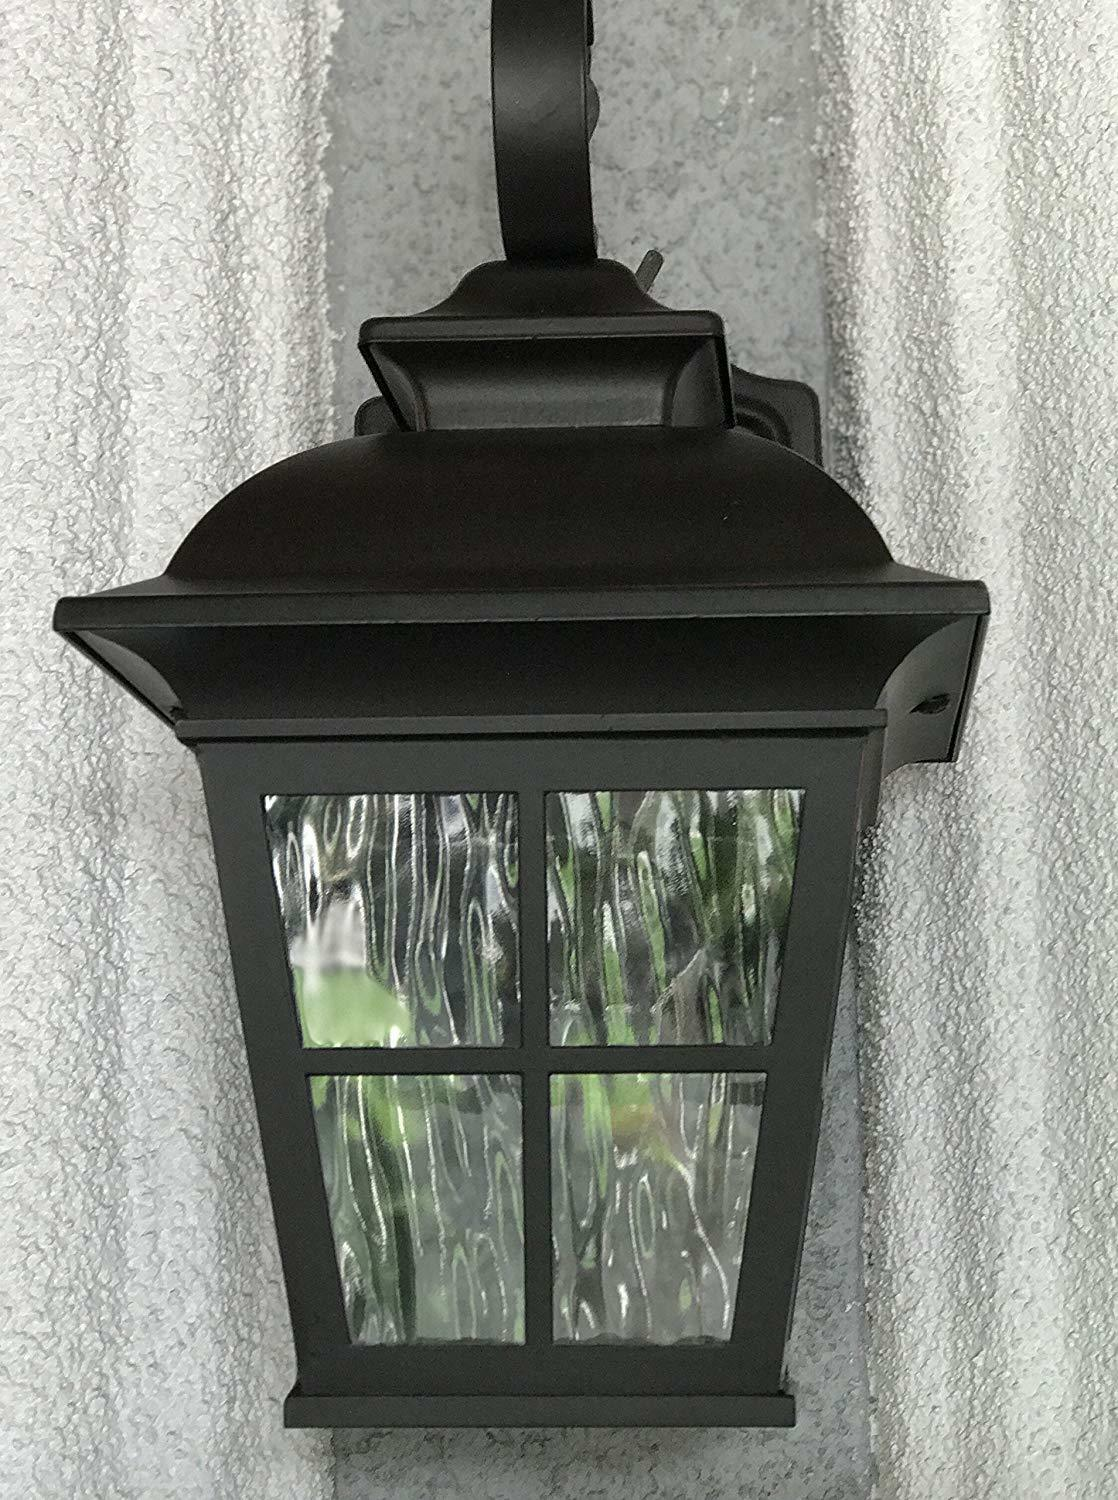 Image of: New Altair Outdoor Energy Savings Led Lantern Photocell 709775 Uncle Wiener S Wholesale